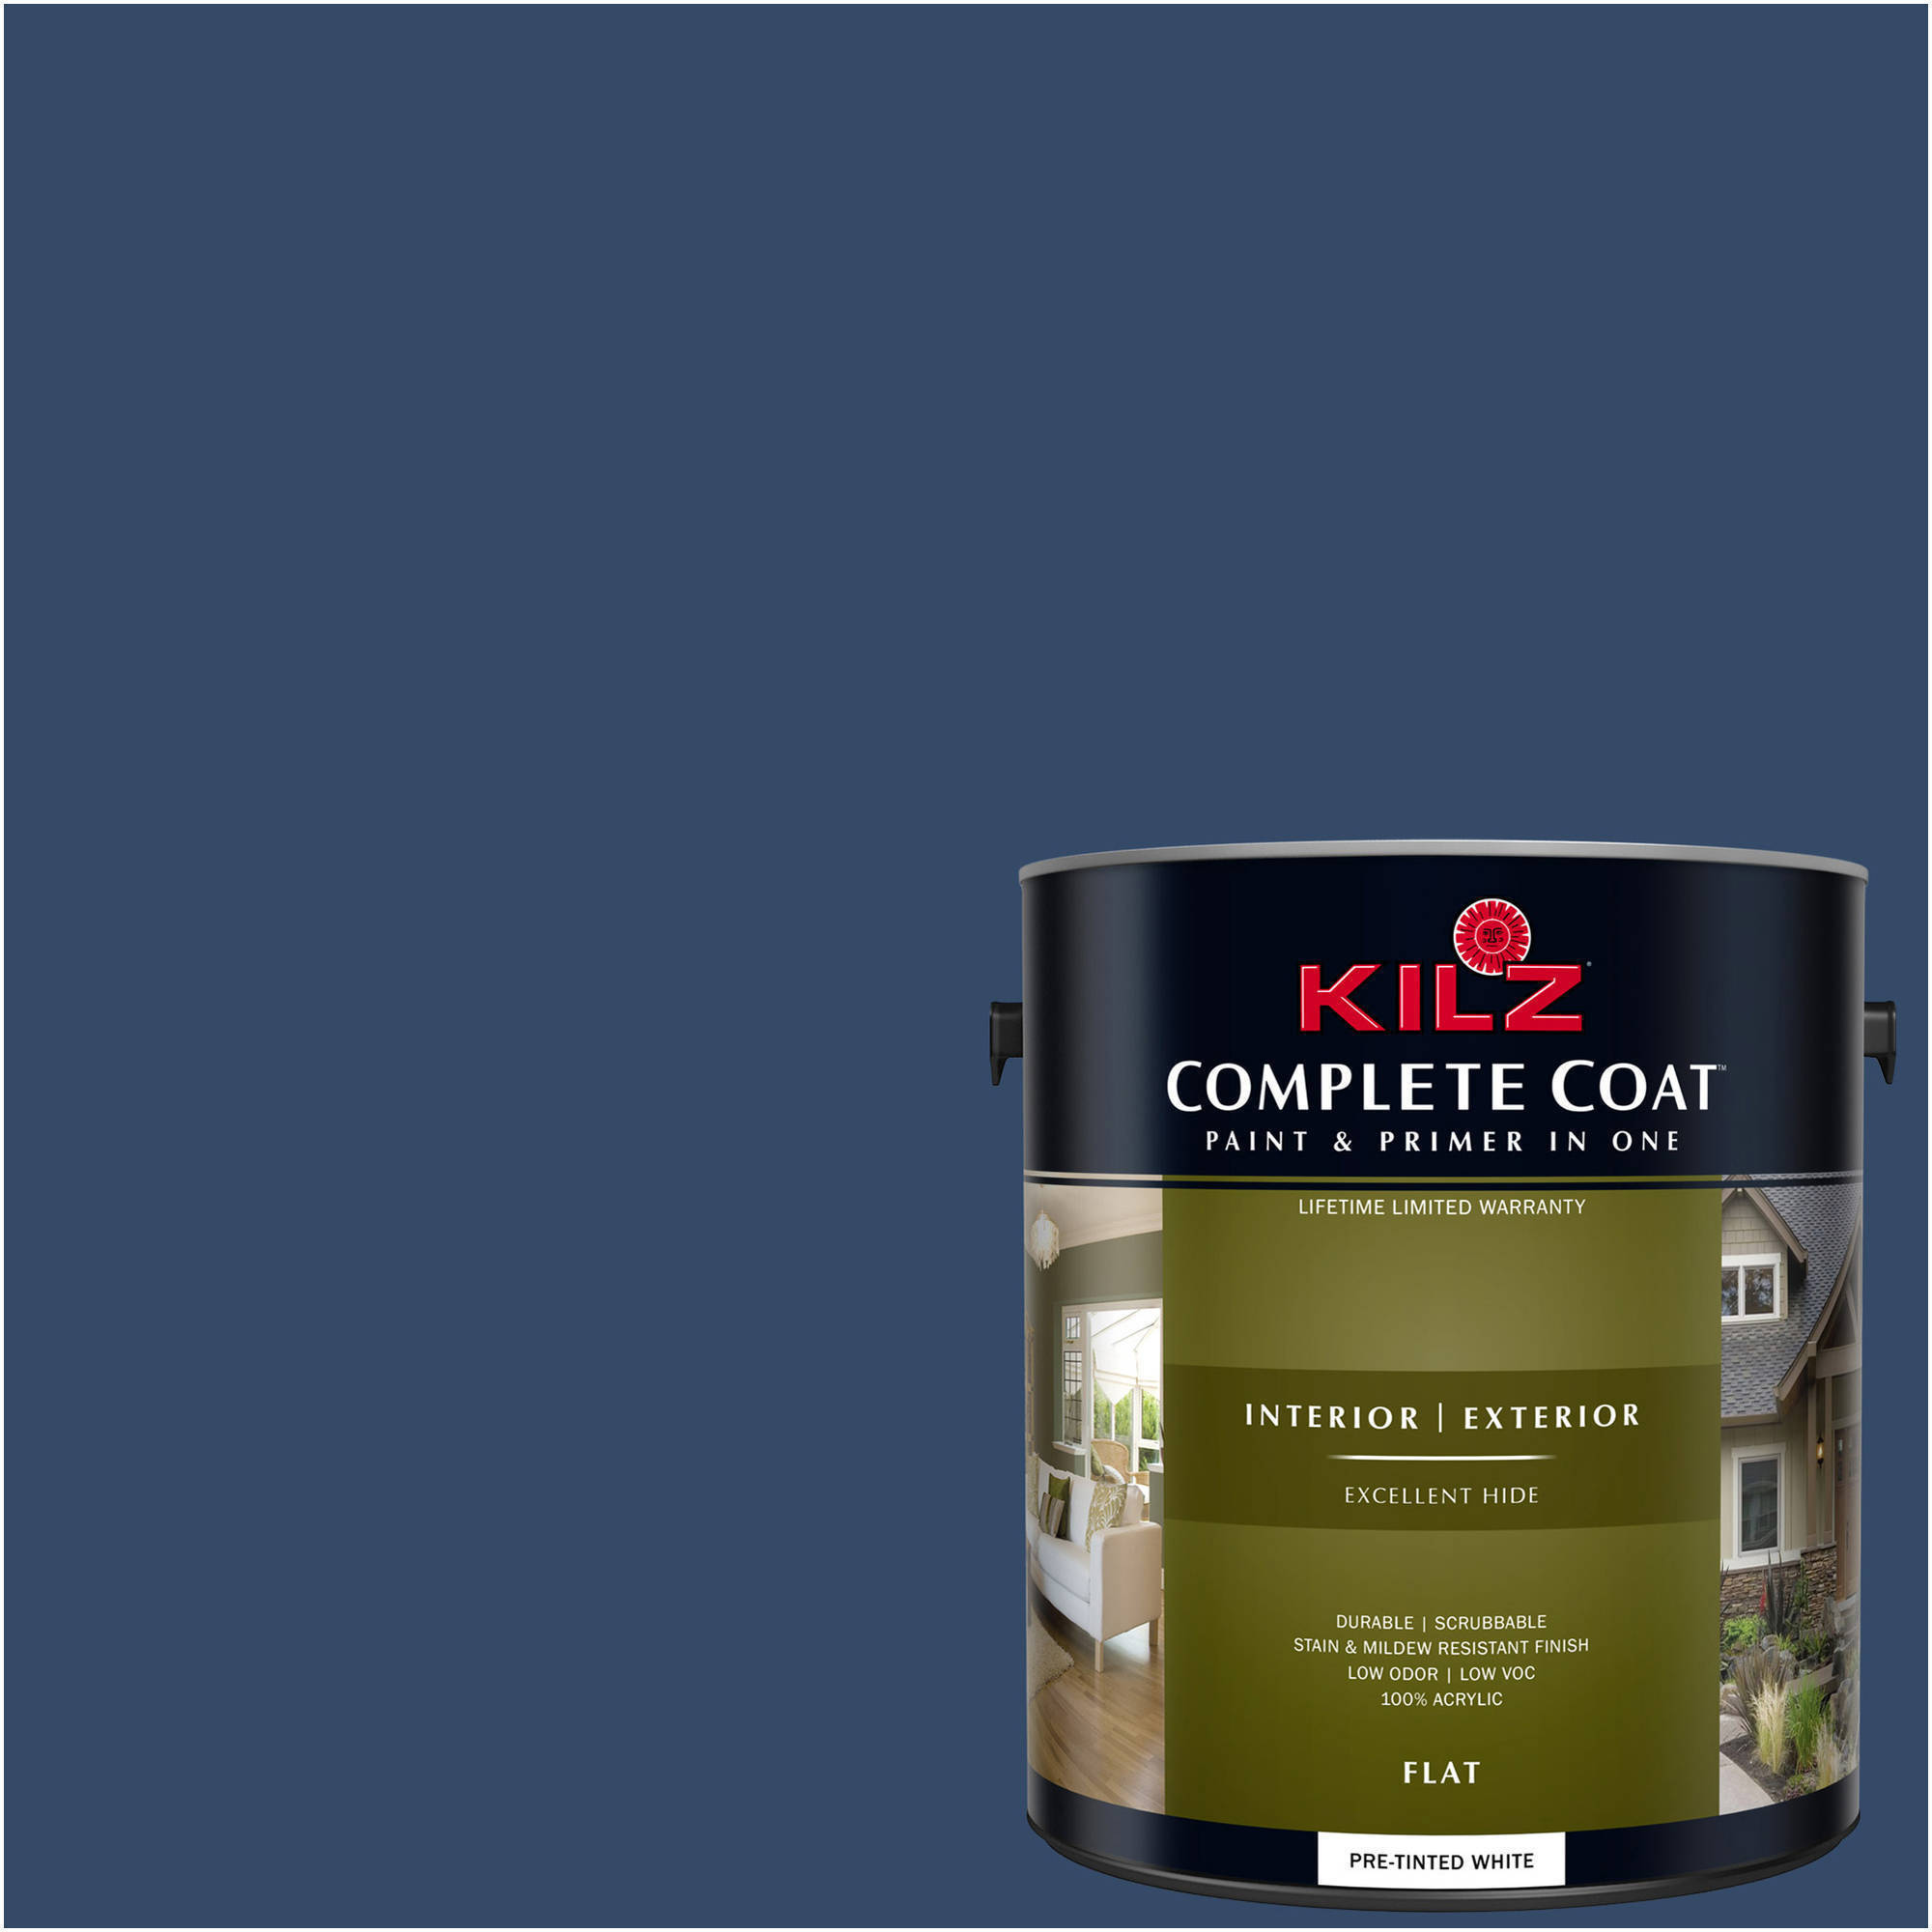 KILZ COMPLETE COAT Interior/Exterior Paint & Primer in One #RC100-02 Fountain Pen